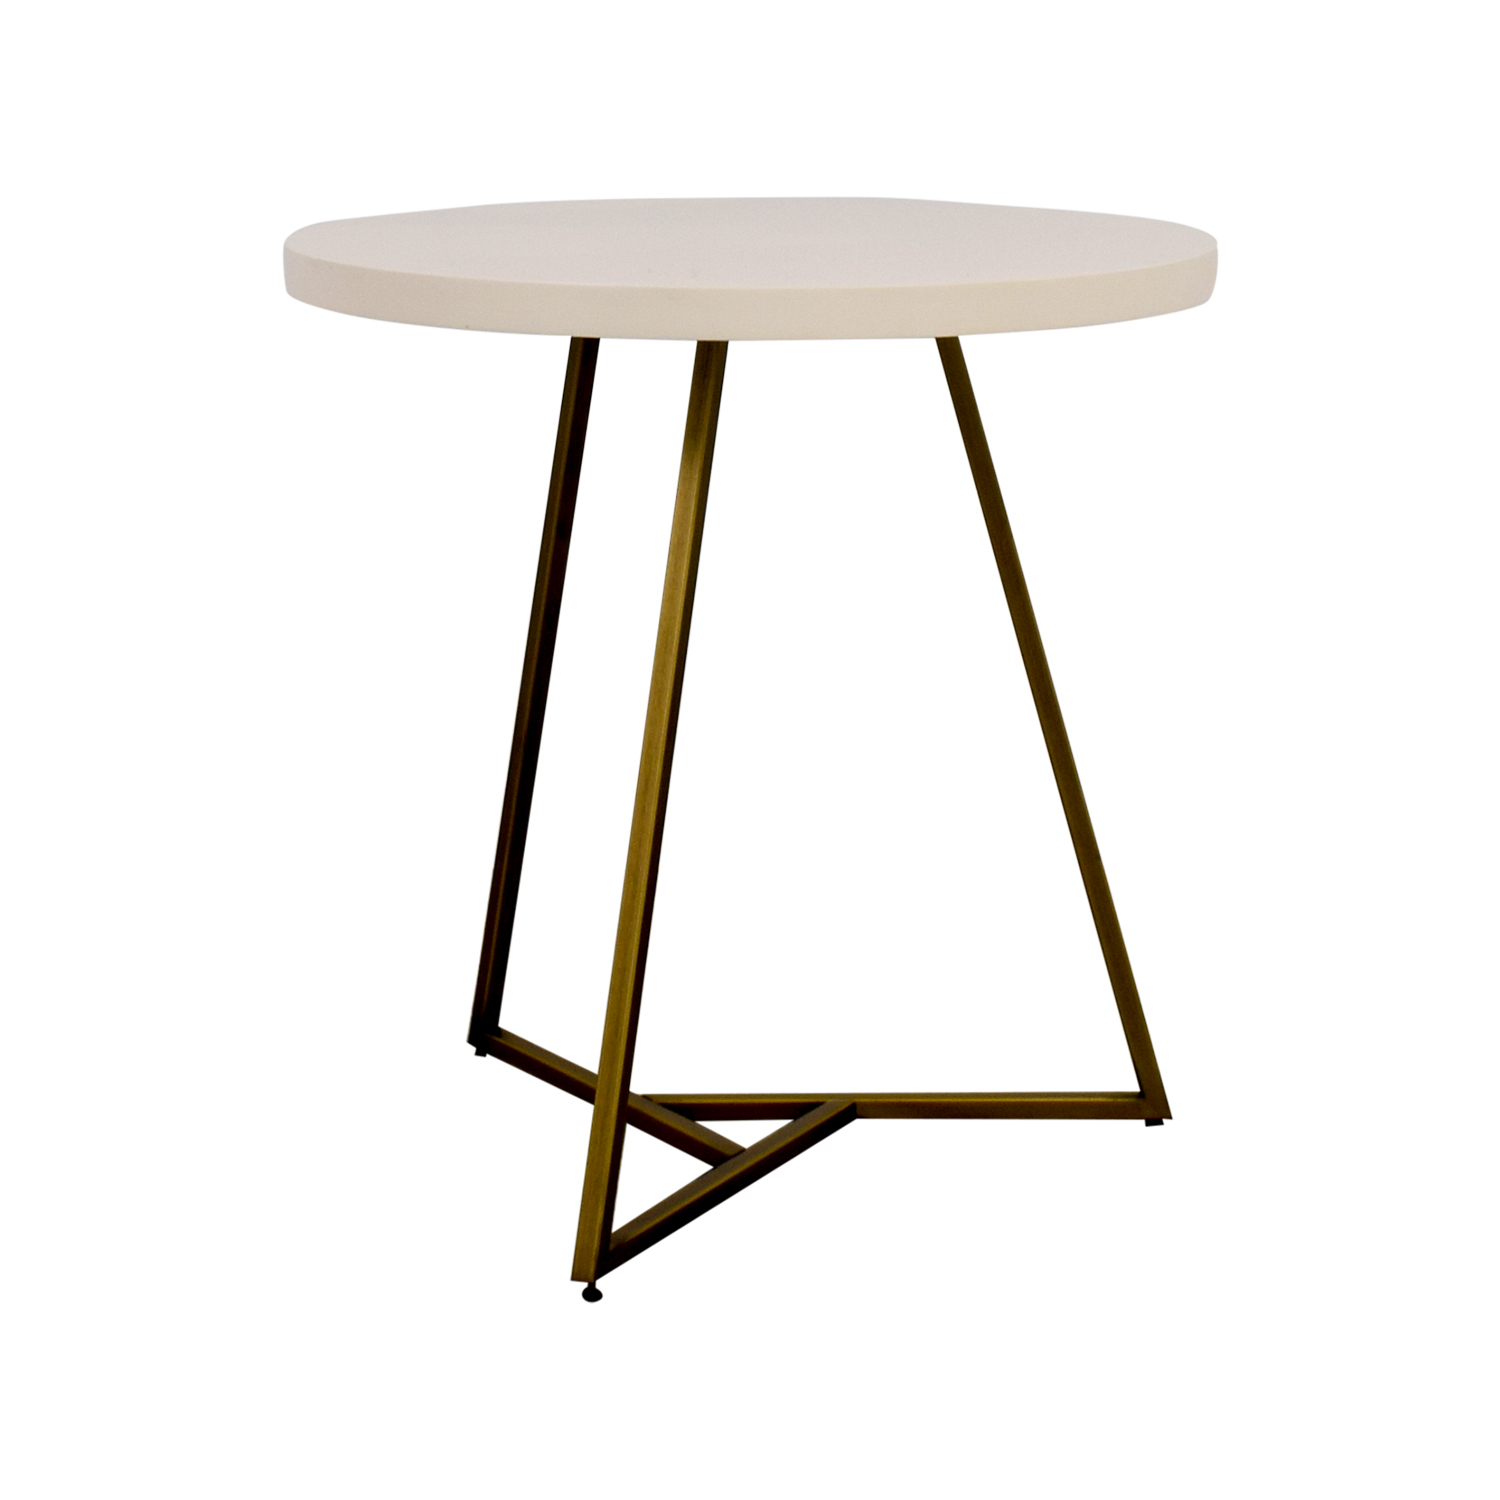 West Elm West Elm White Lacquer Top Cafe Table discount